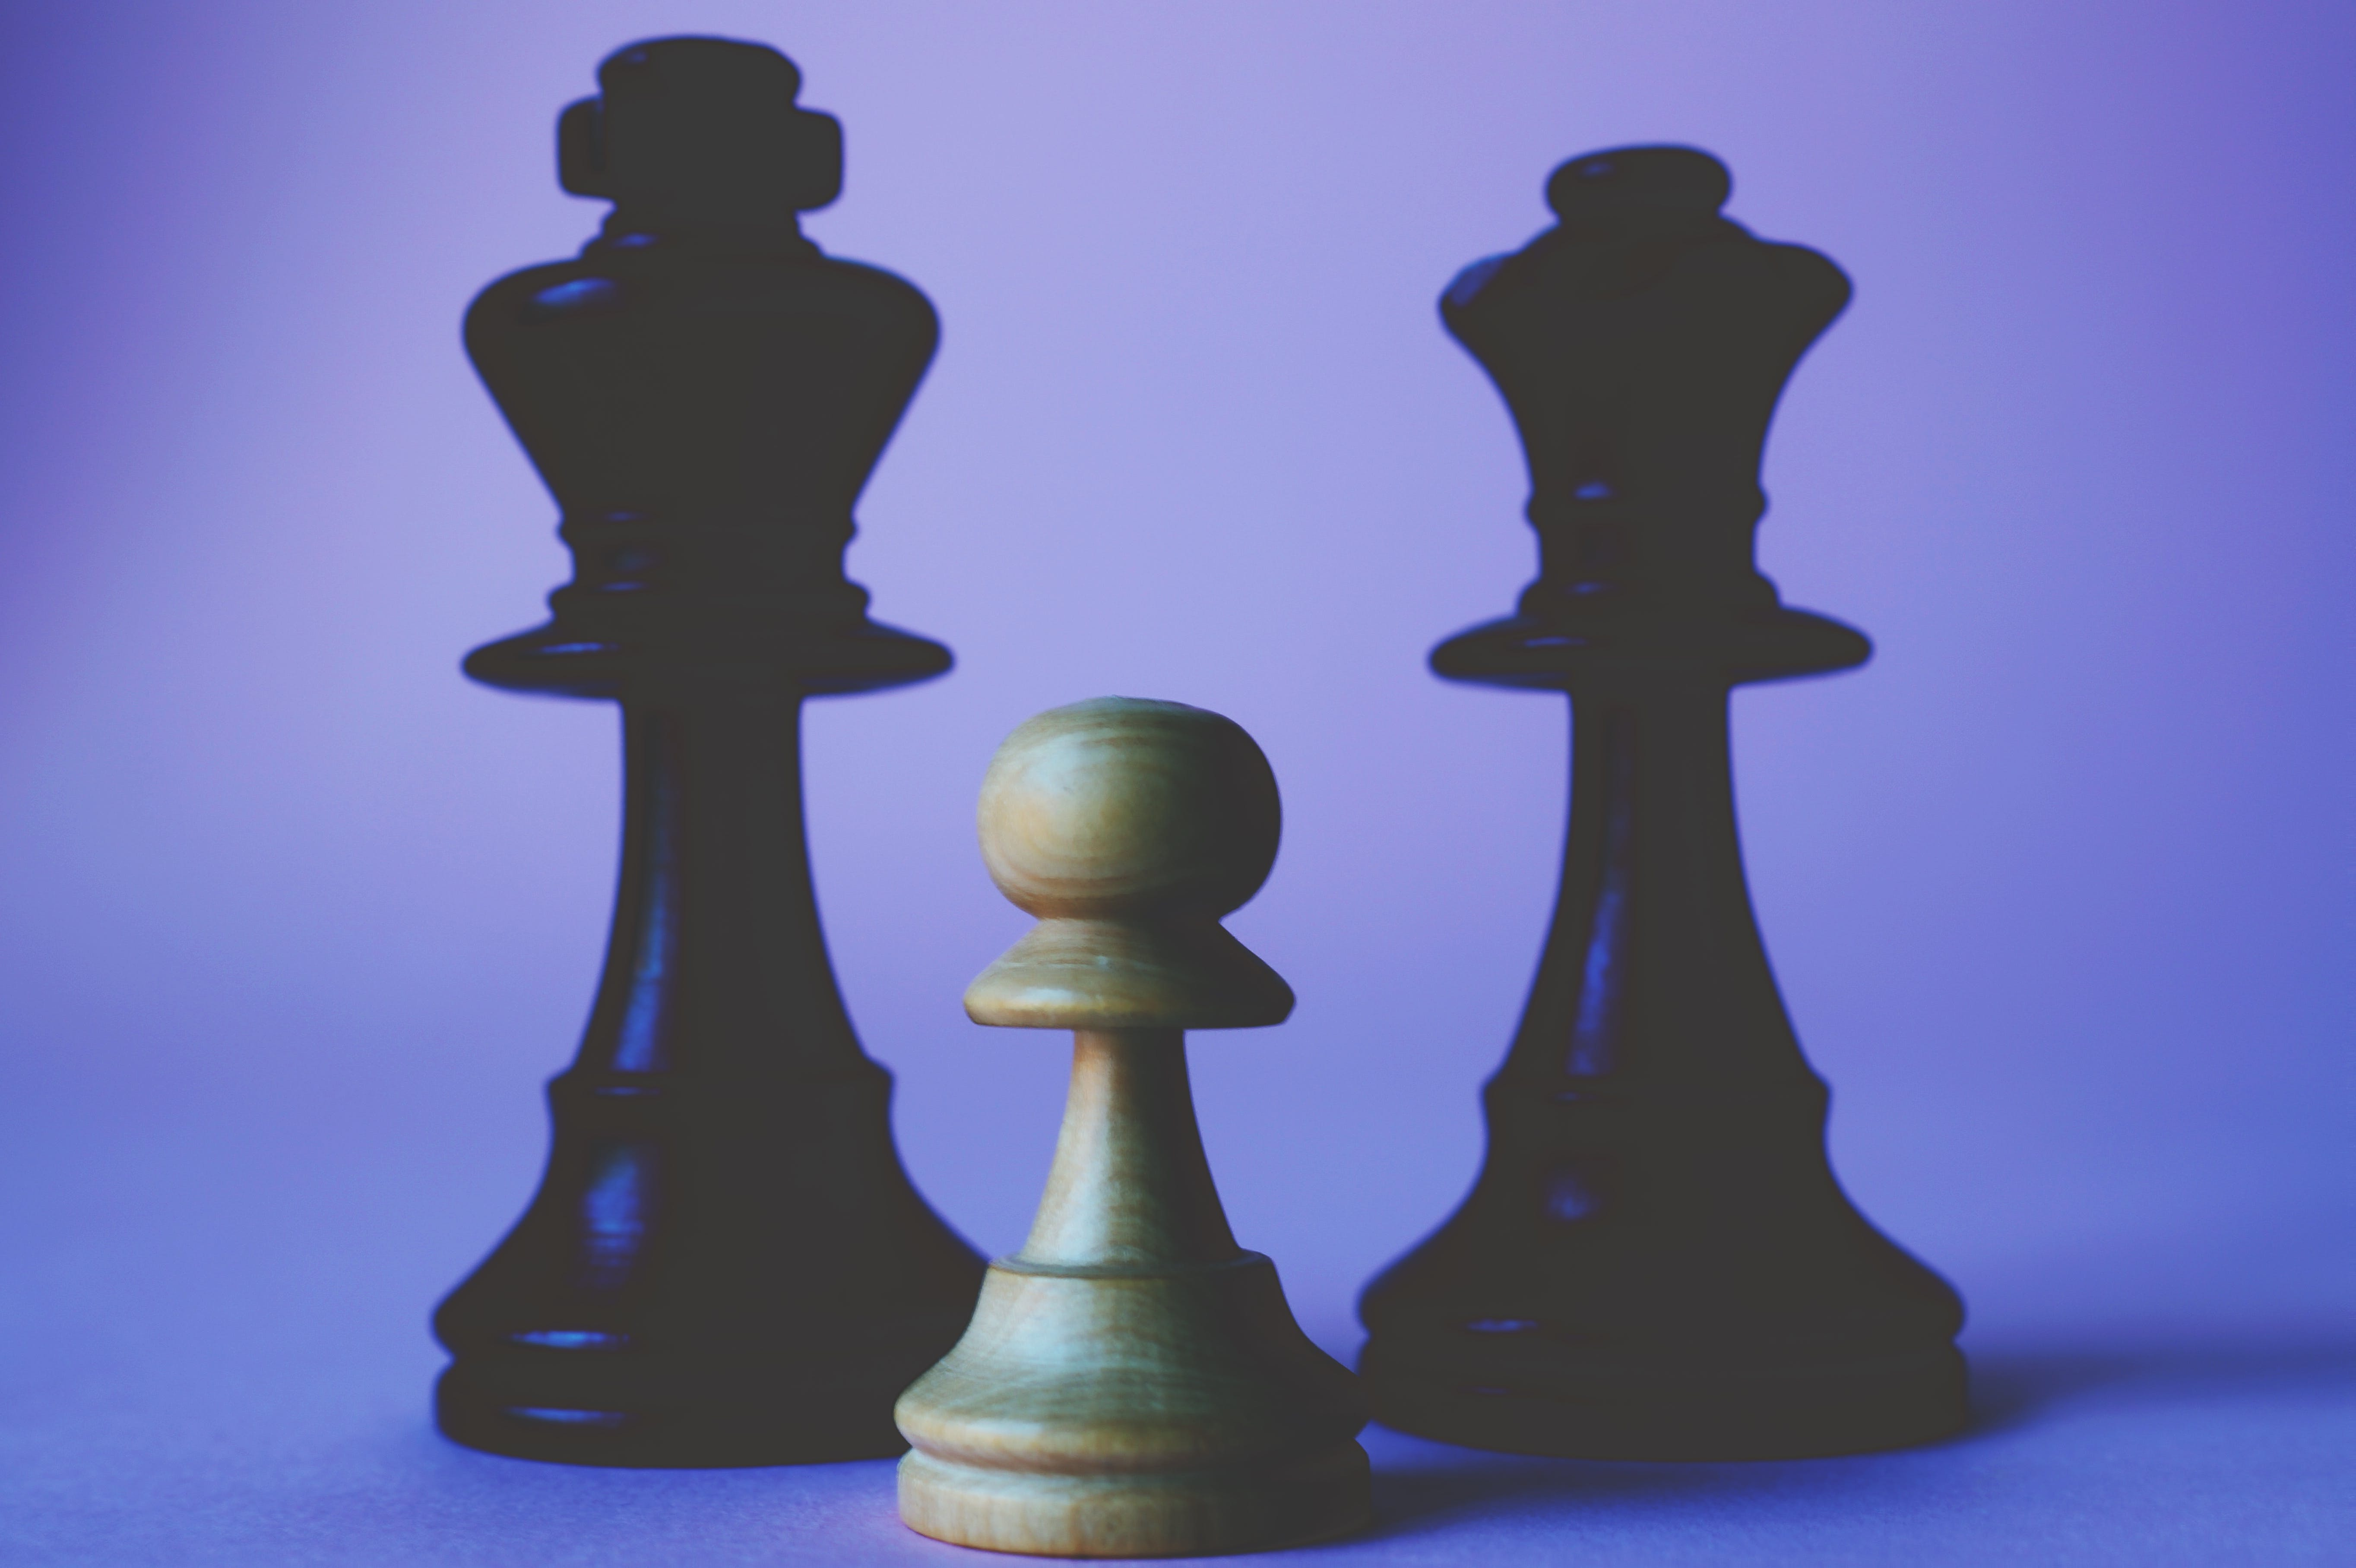 Three Black and Beige Chess Pieces